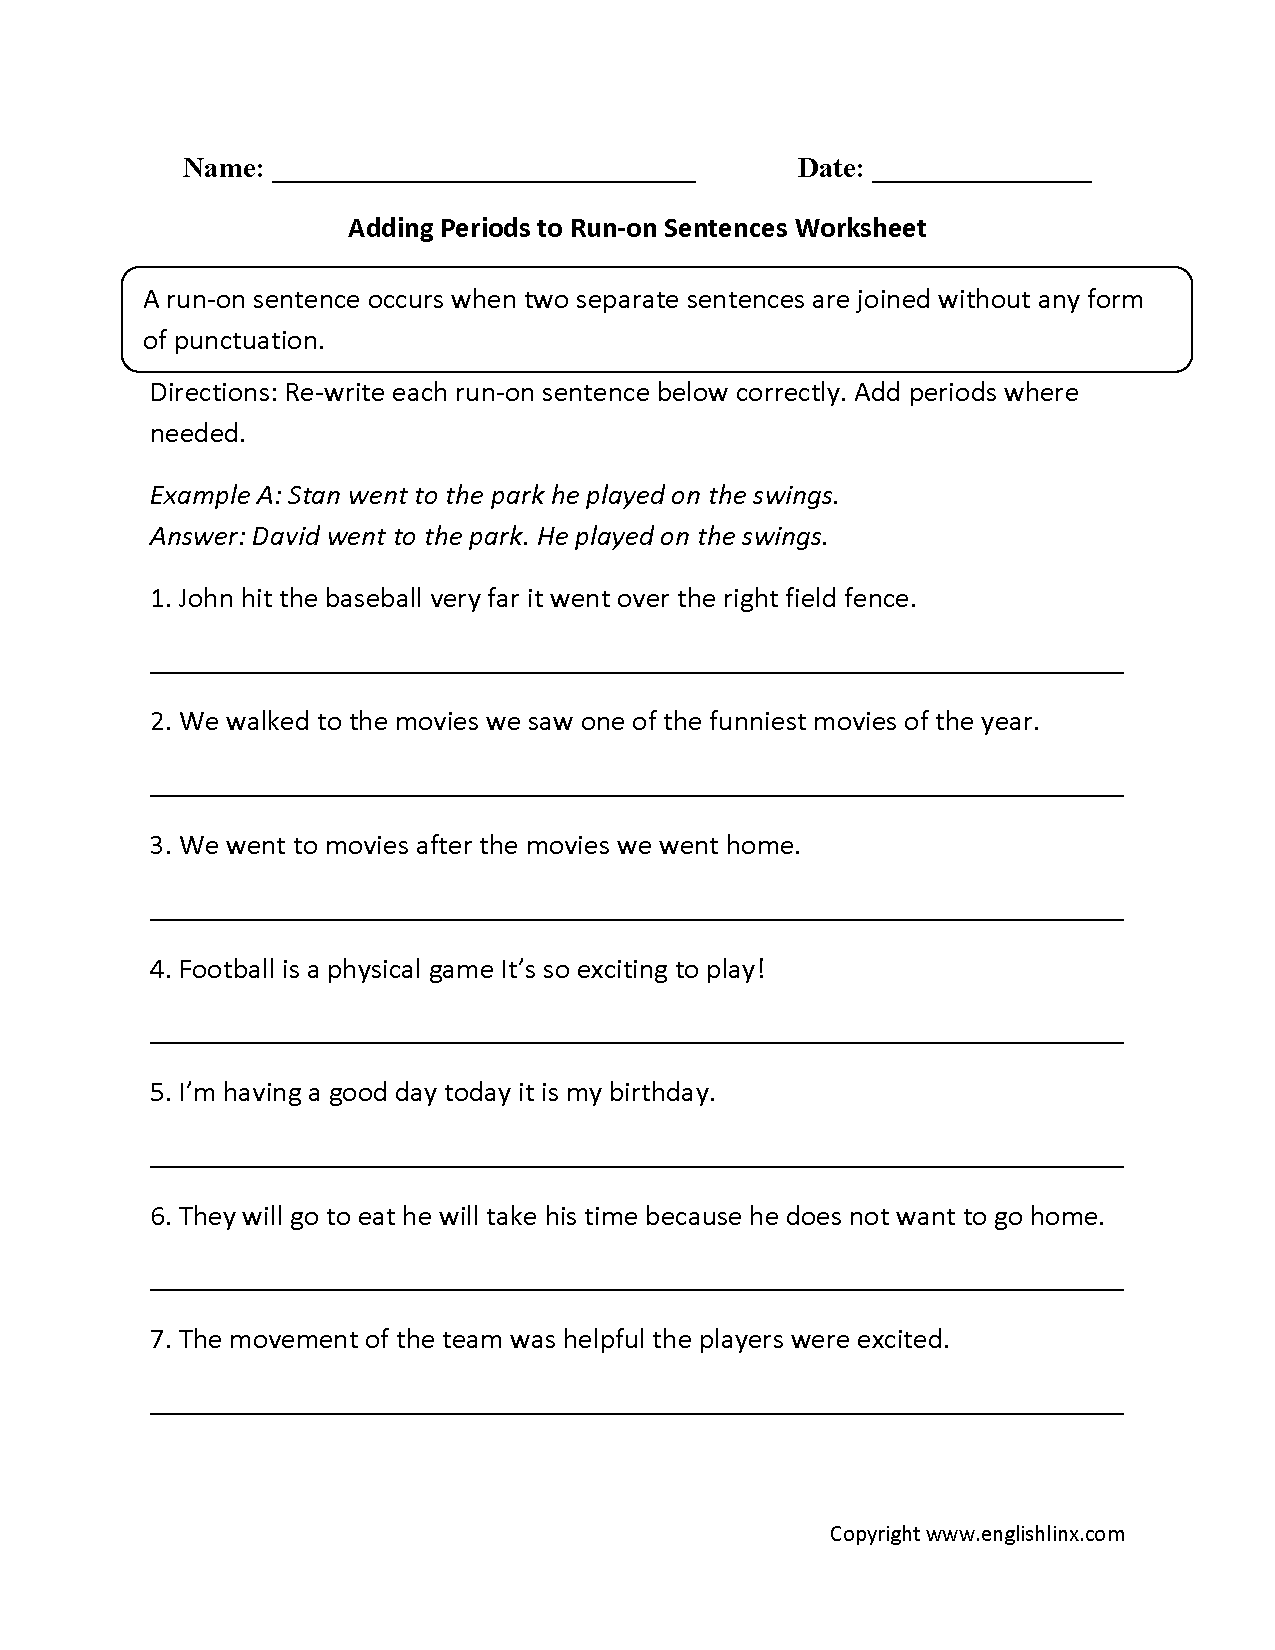 worksheet Fragments And Run-ons Worksheets sentences worksheets run on worksheets